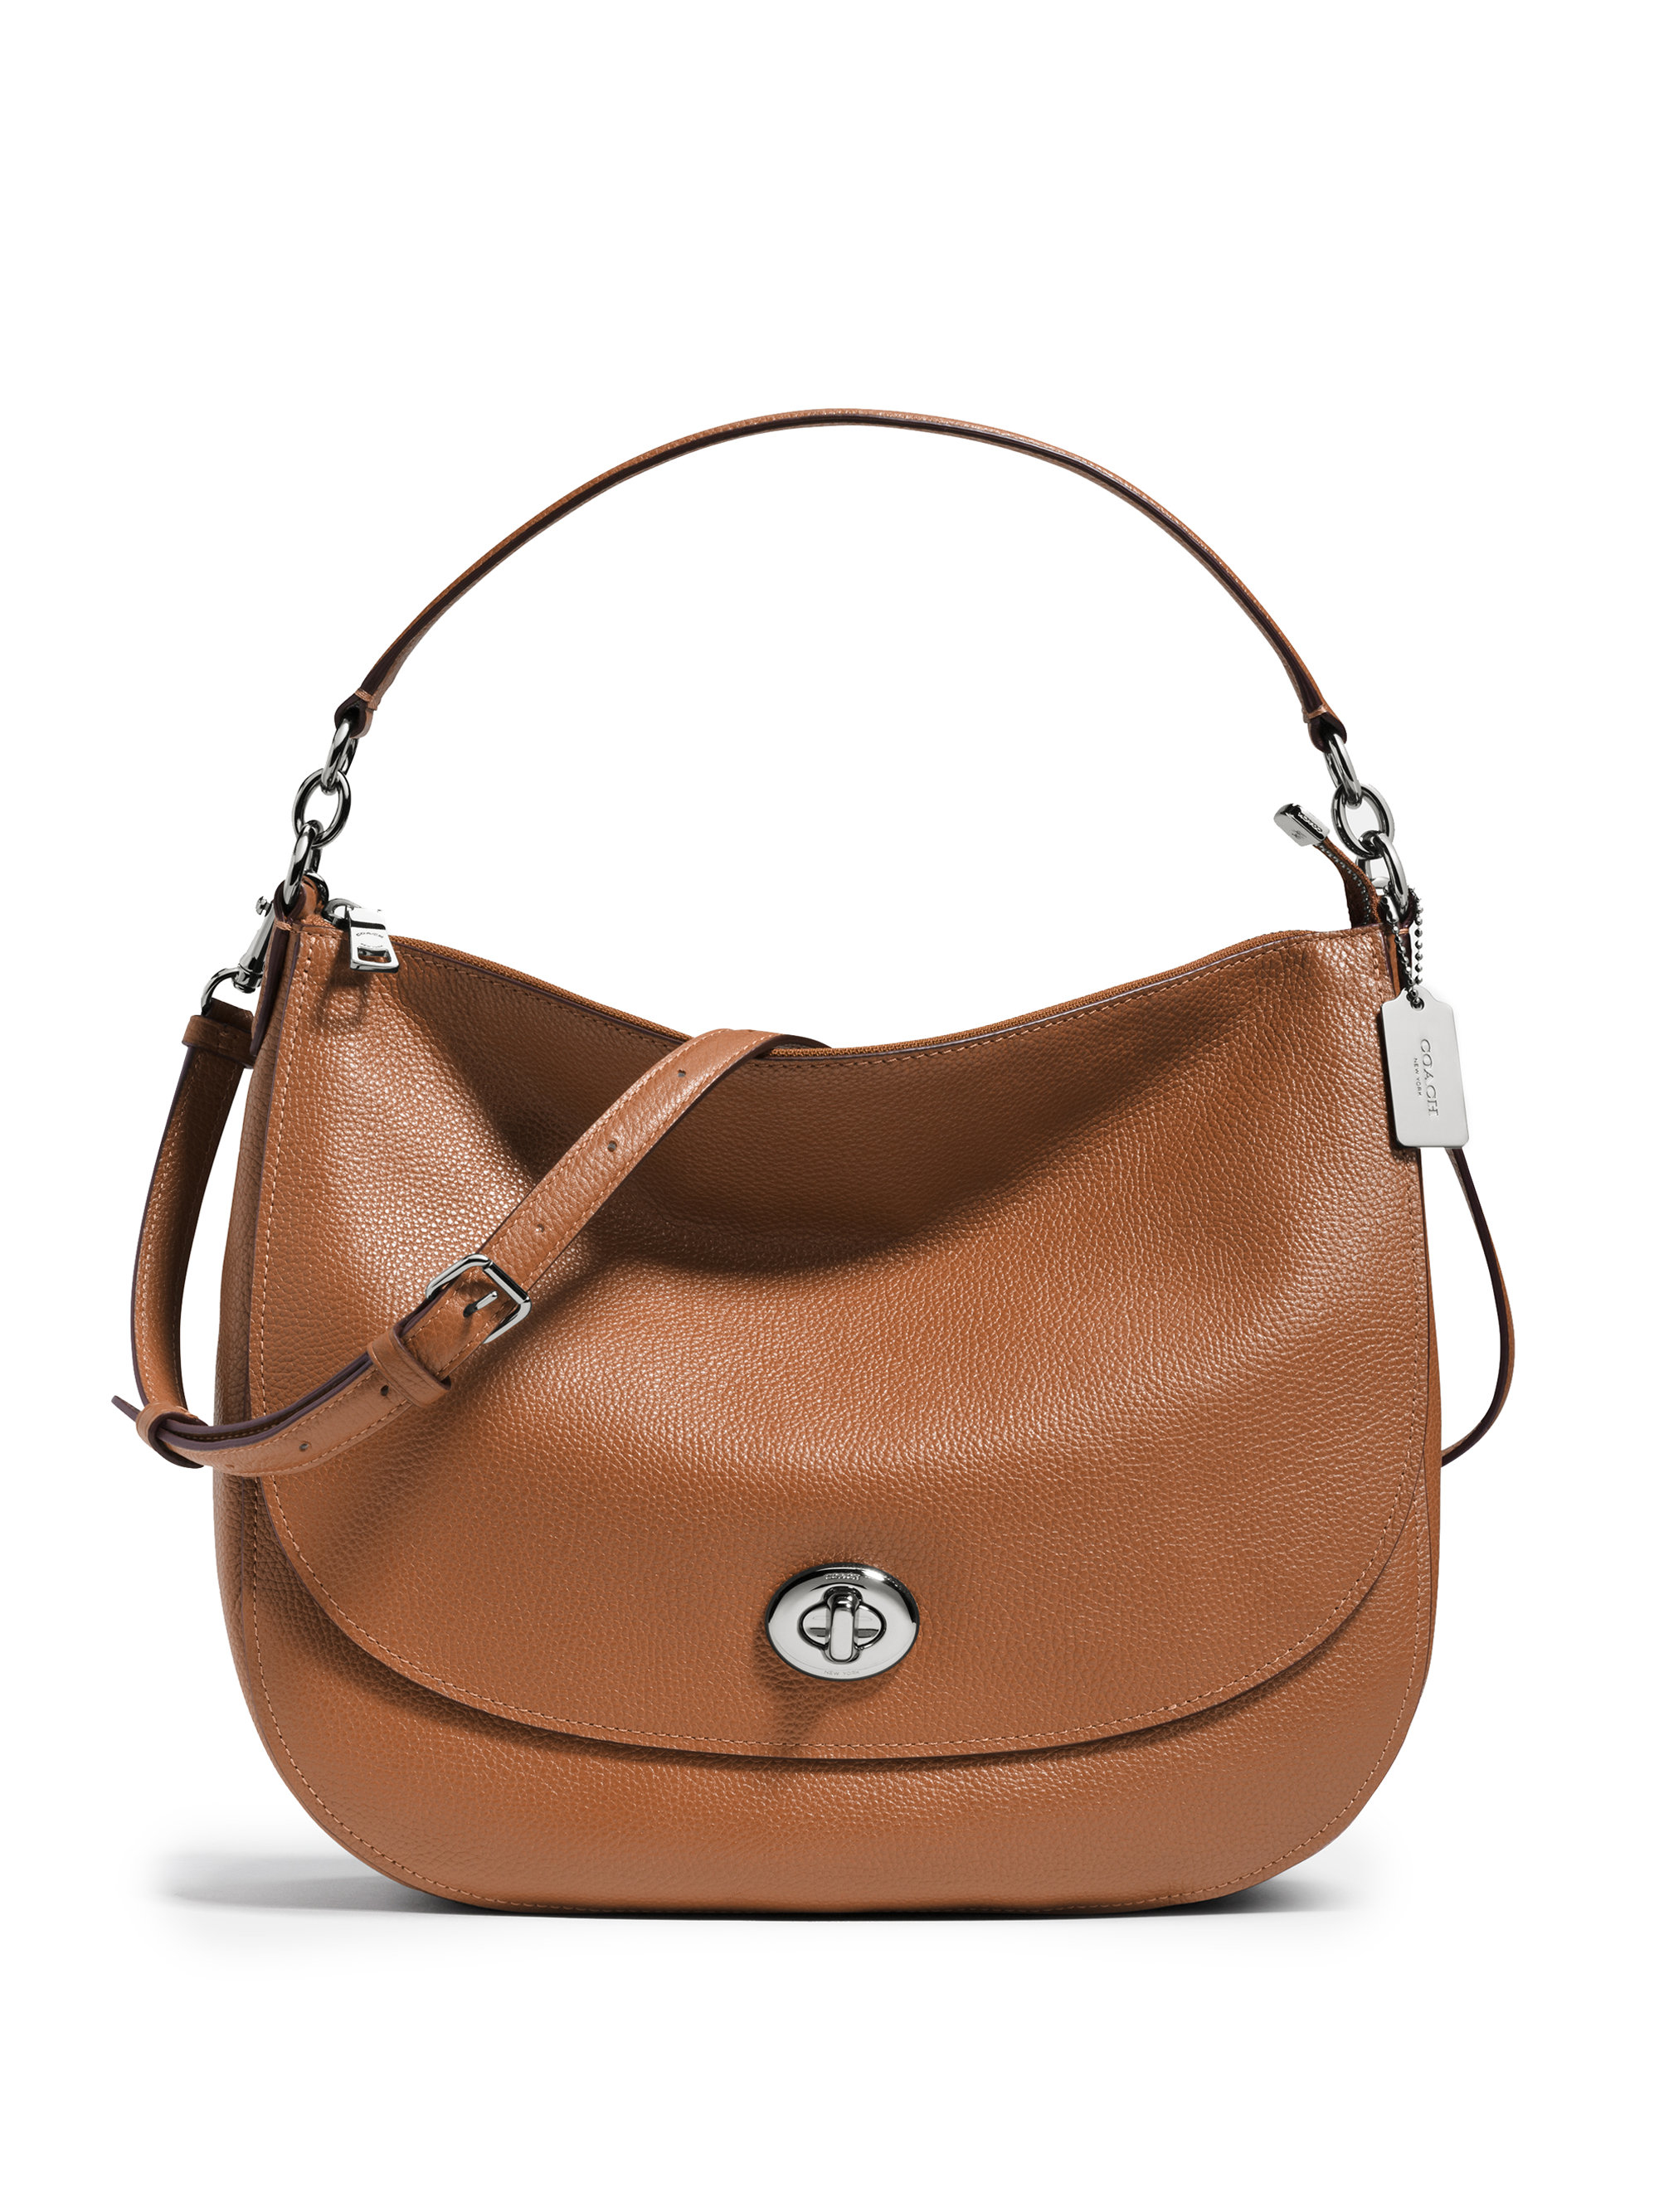 Coach Pebbled Leather Turnlock Hobo Bag in Brown | Lyst